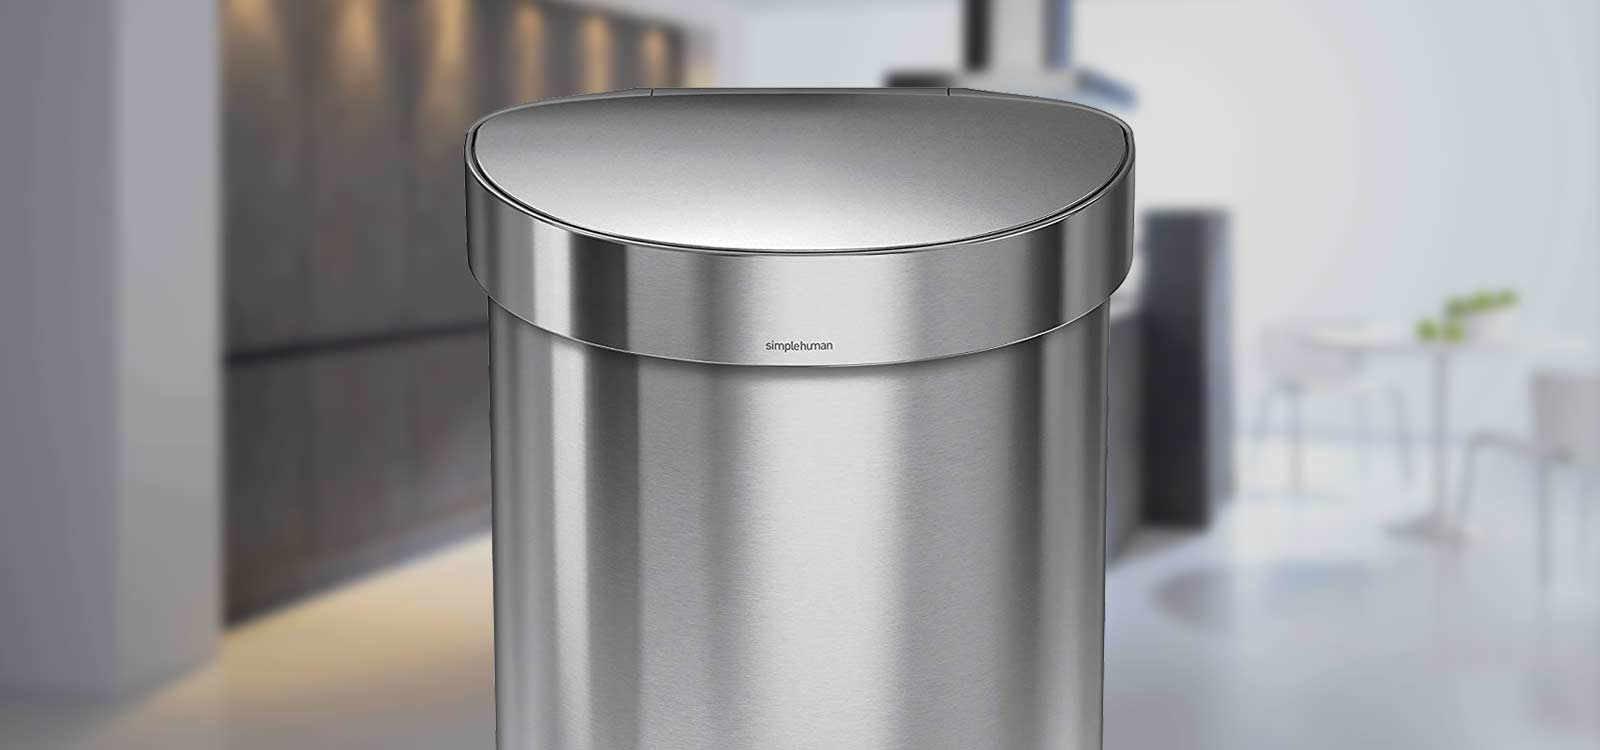 Stainless Steel Kitchen Trash Cans Amp Recycling Bins